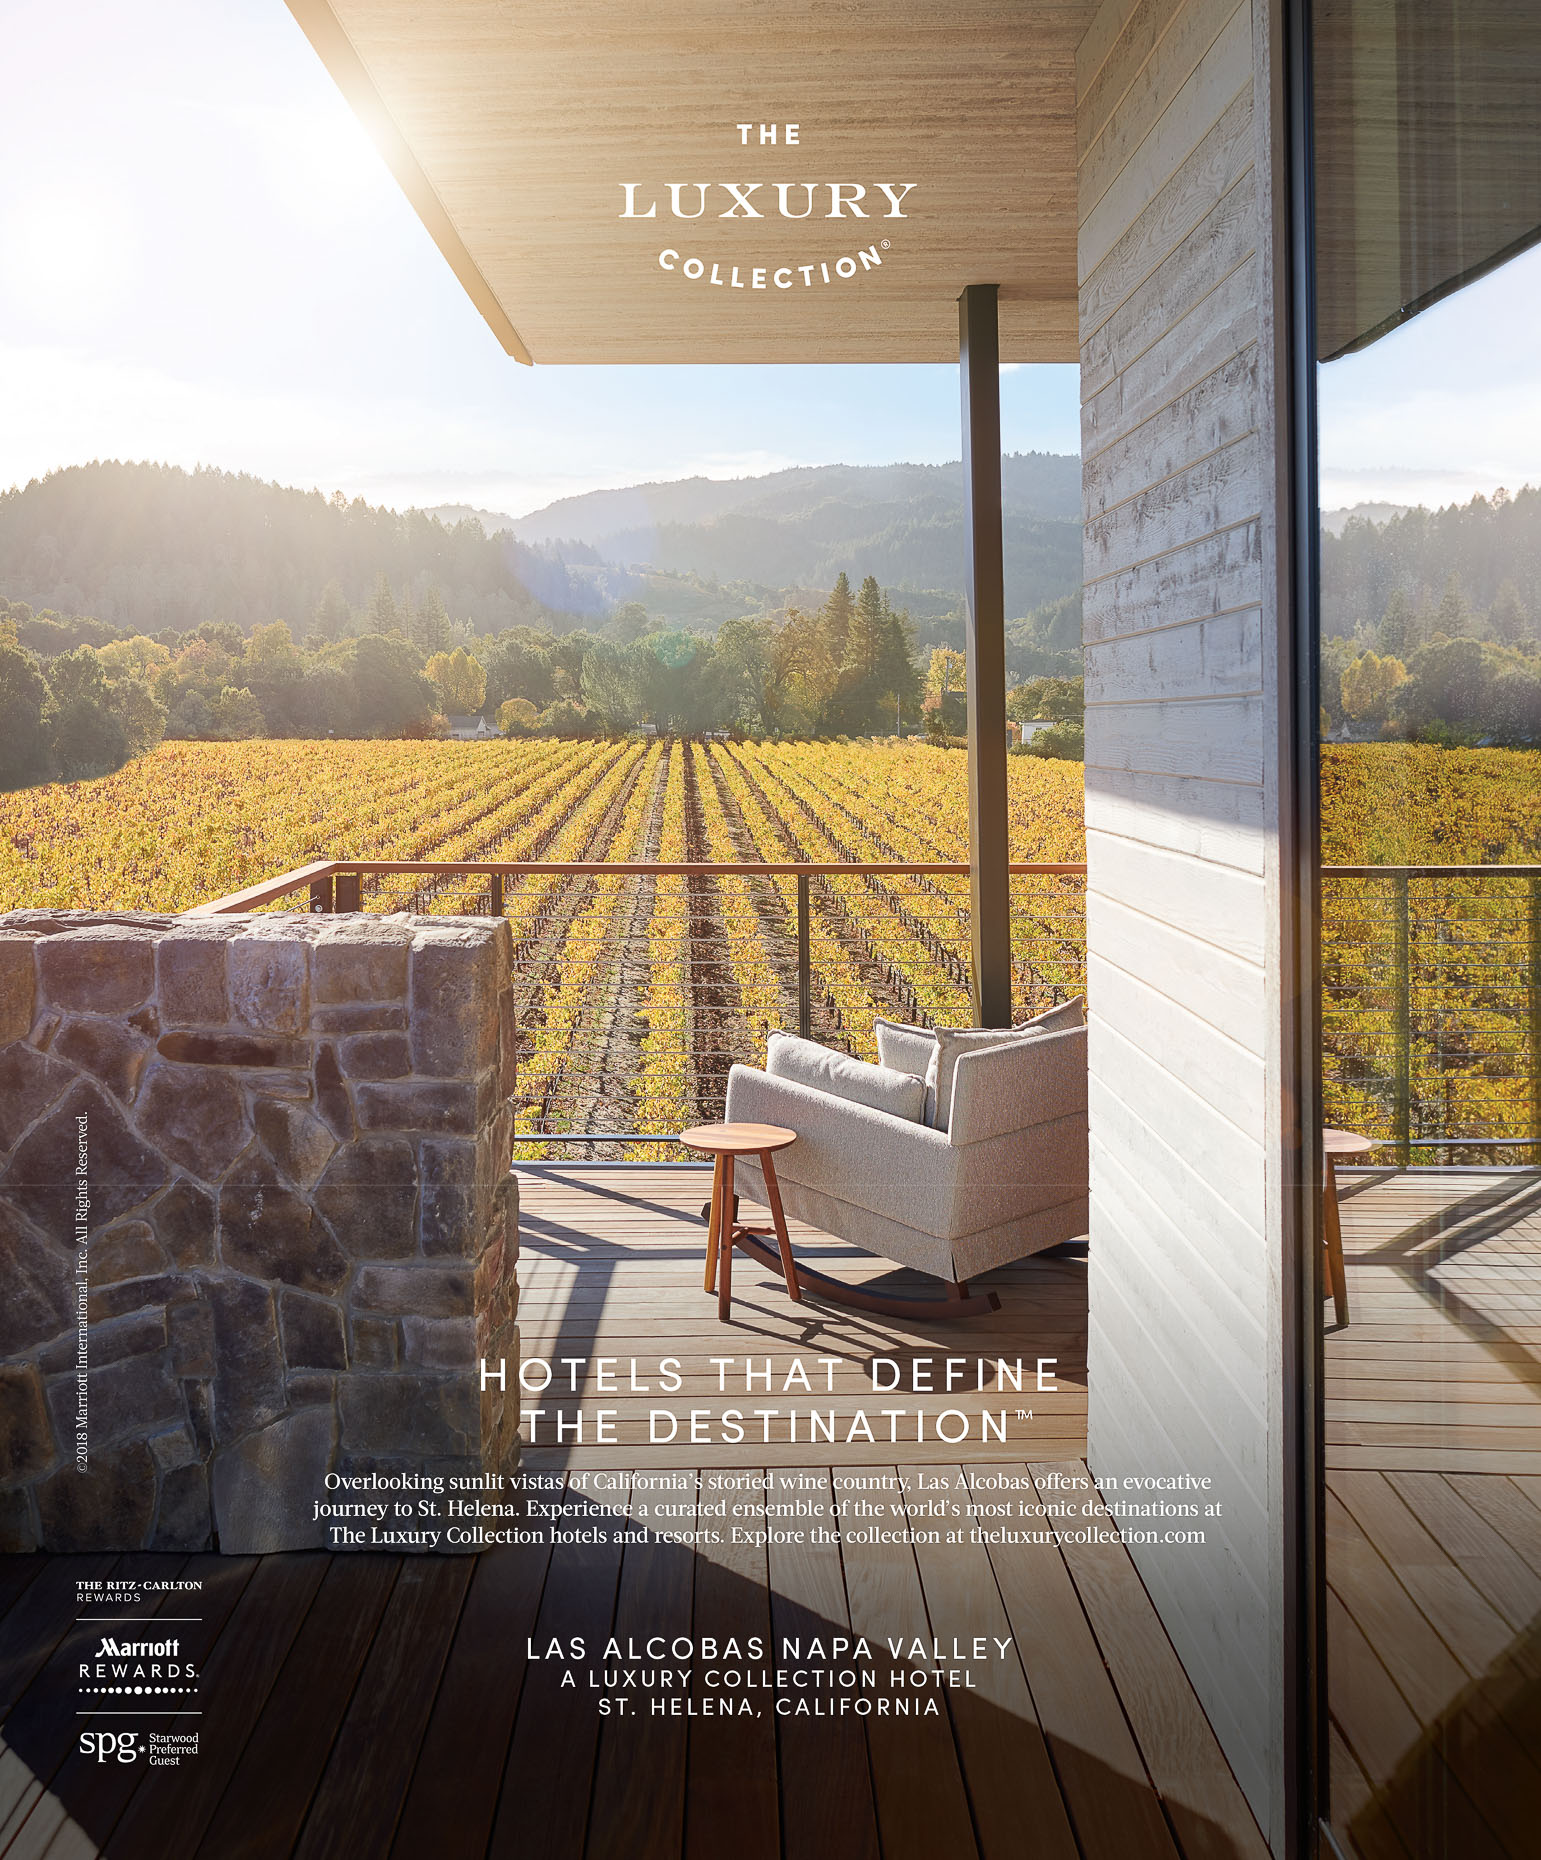 LUX3823_CNT_mayjune_Napa.indd